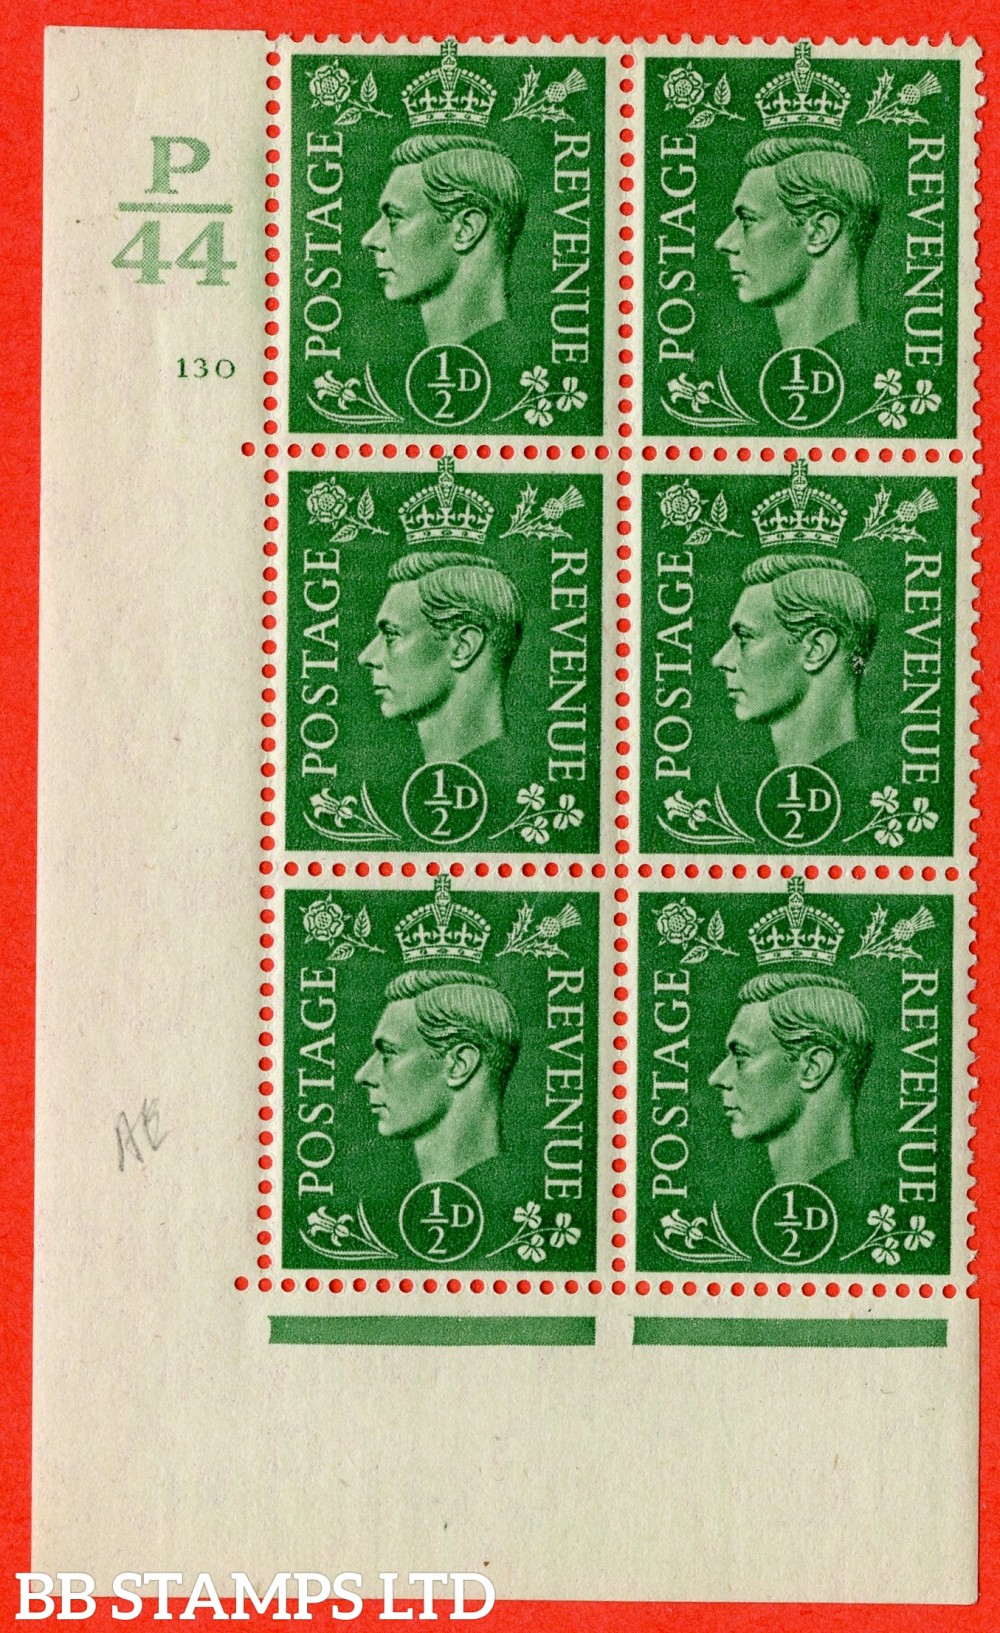 "SG. 485. Q2. ½d Pale Green. A fine lightly mounted mint "" Control P44 cylinder 130 no dot "" block of 6 with perf type 5AE AE/I with marginal rule."